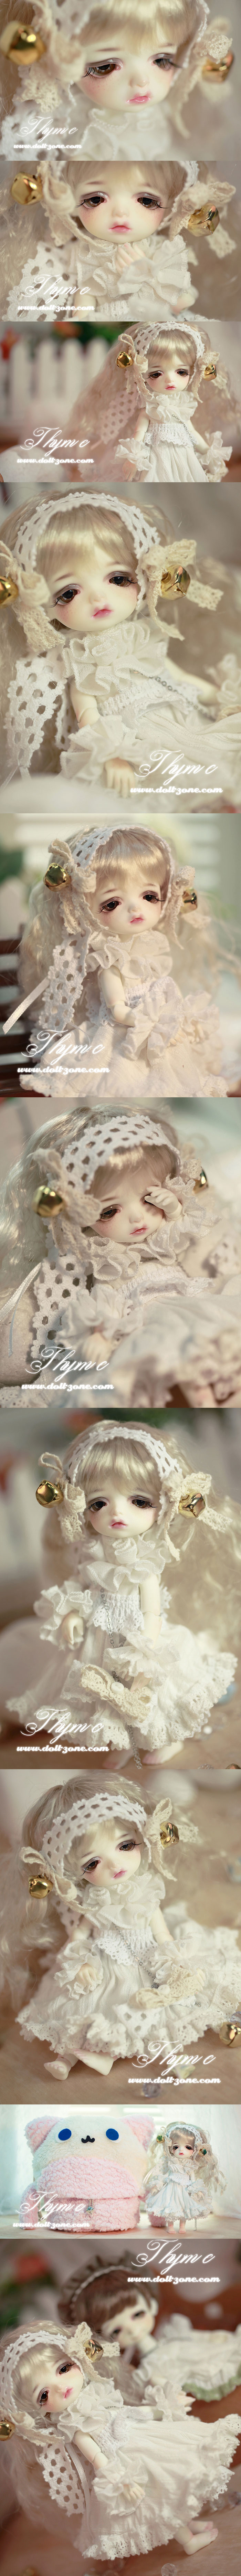 BJD Thyme 16cm Girl Ball-jointed Doll